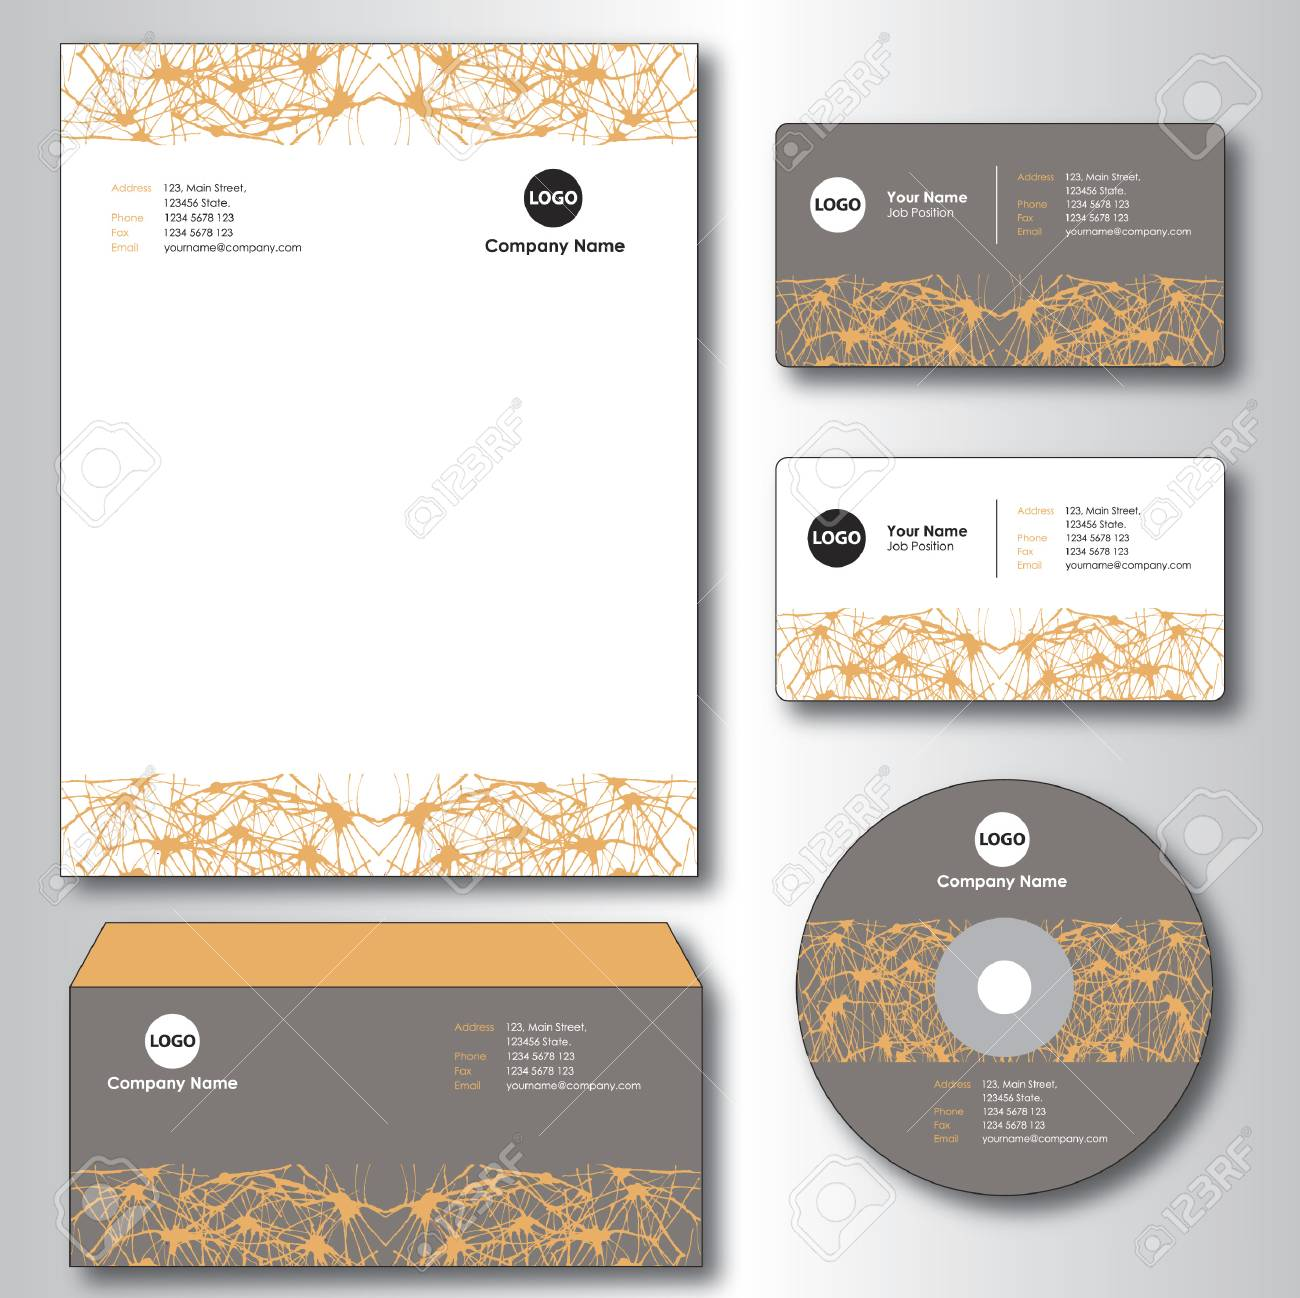 Company paper envelope business card and cd royalty free cliparts company paper envelope business card and cd stock vector 31524691 colourmoves